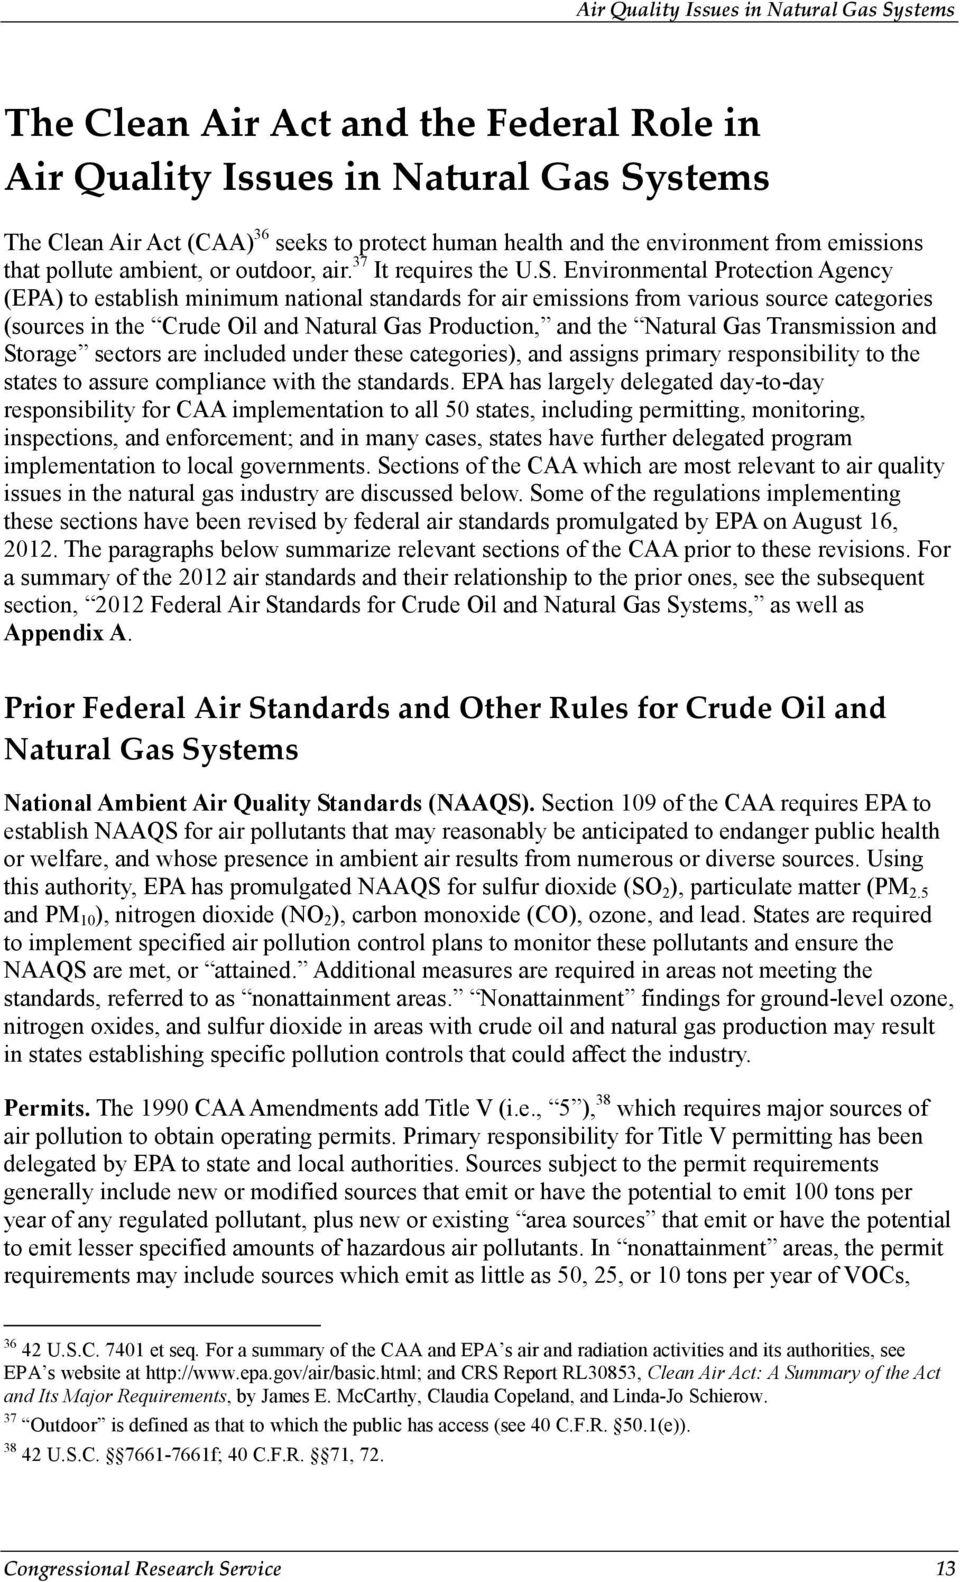 Environmental Protection Agency (EPA) to establish minimum national standards for air emissions from various source categories (sources in the Crude Oil and Natural Gas Production, and the Natural